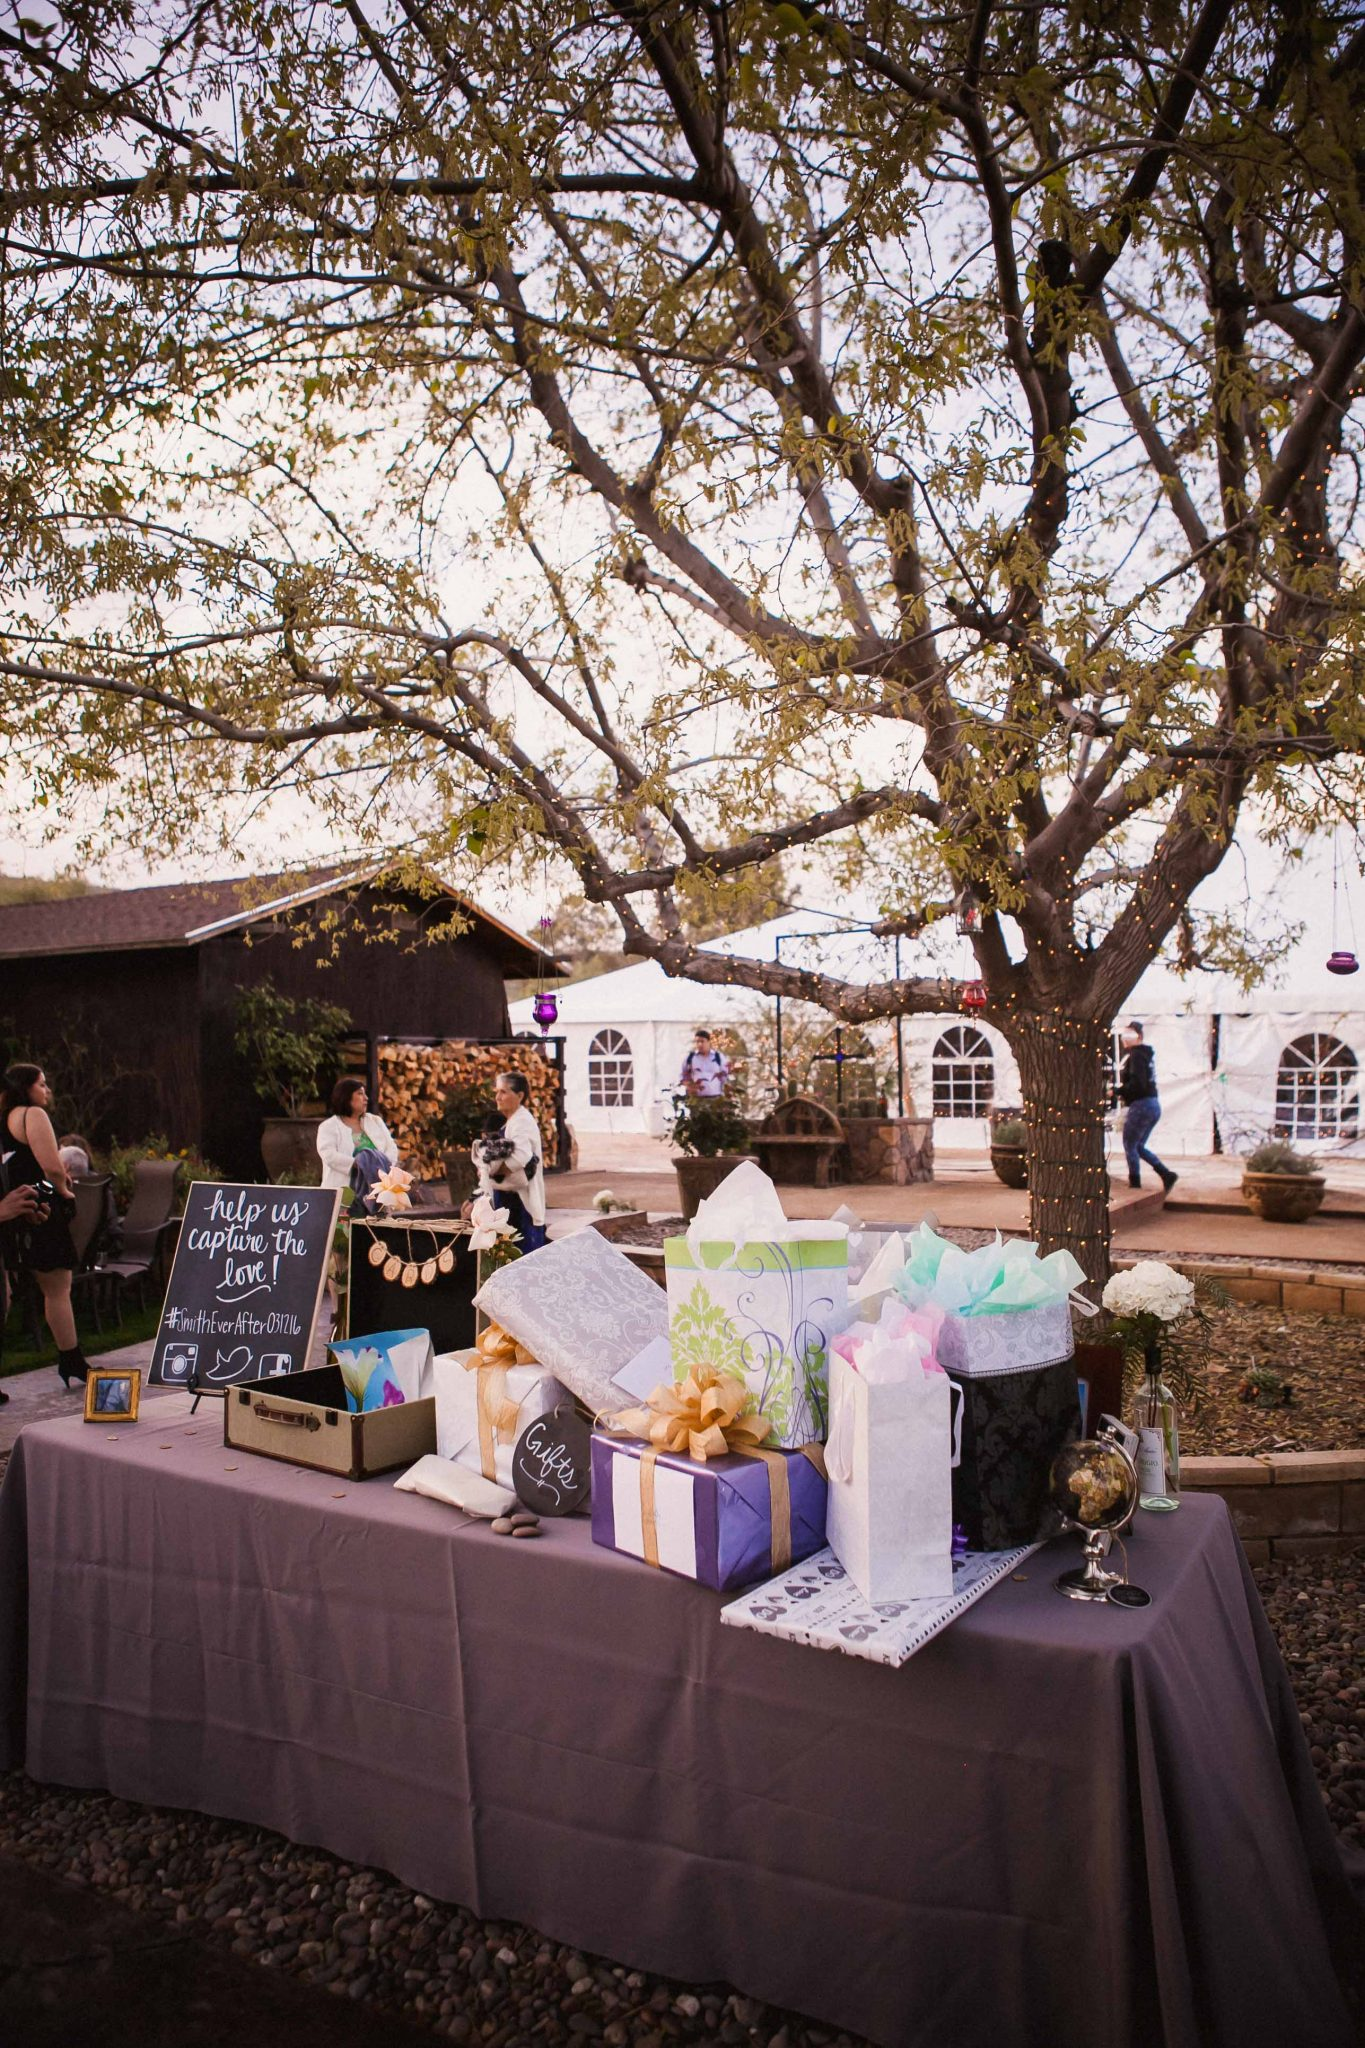 Wedding decor gift table at the reception